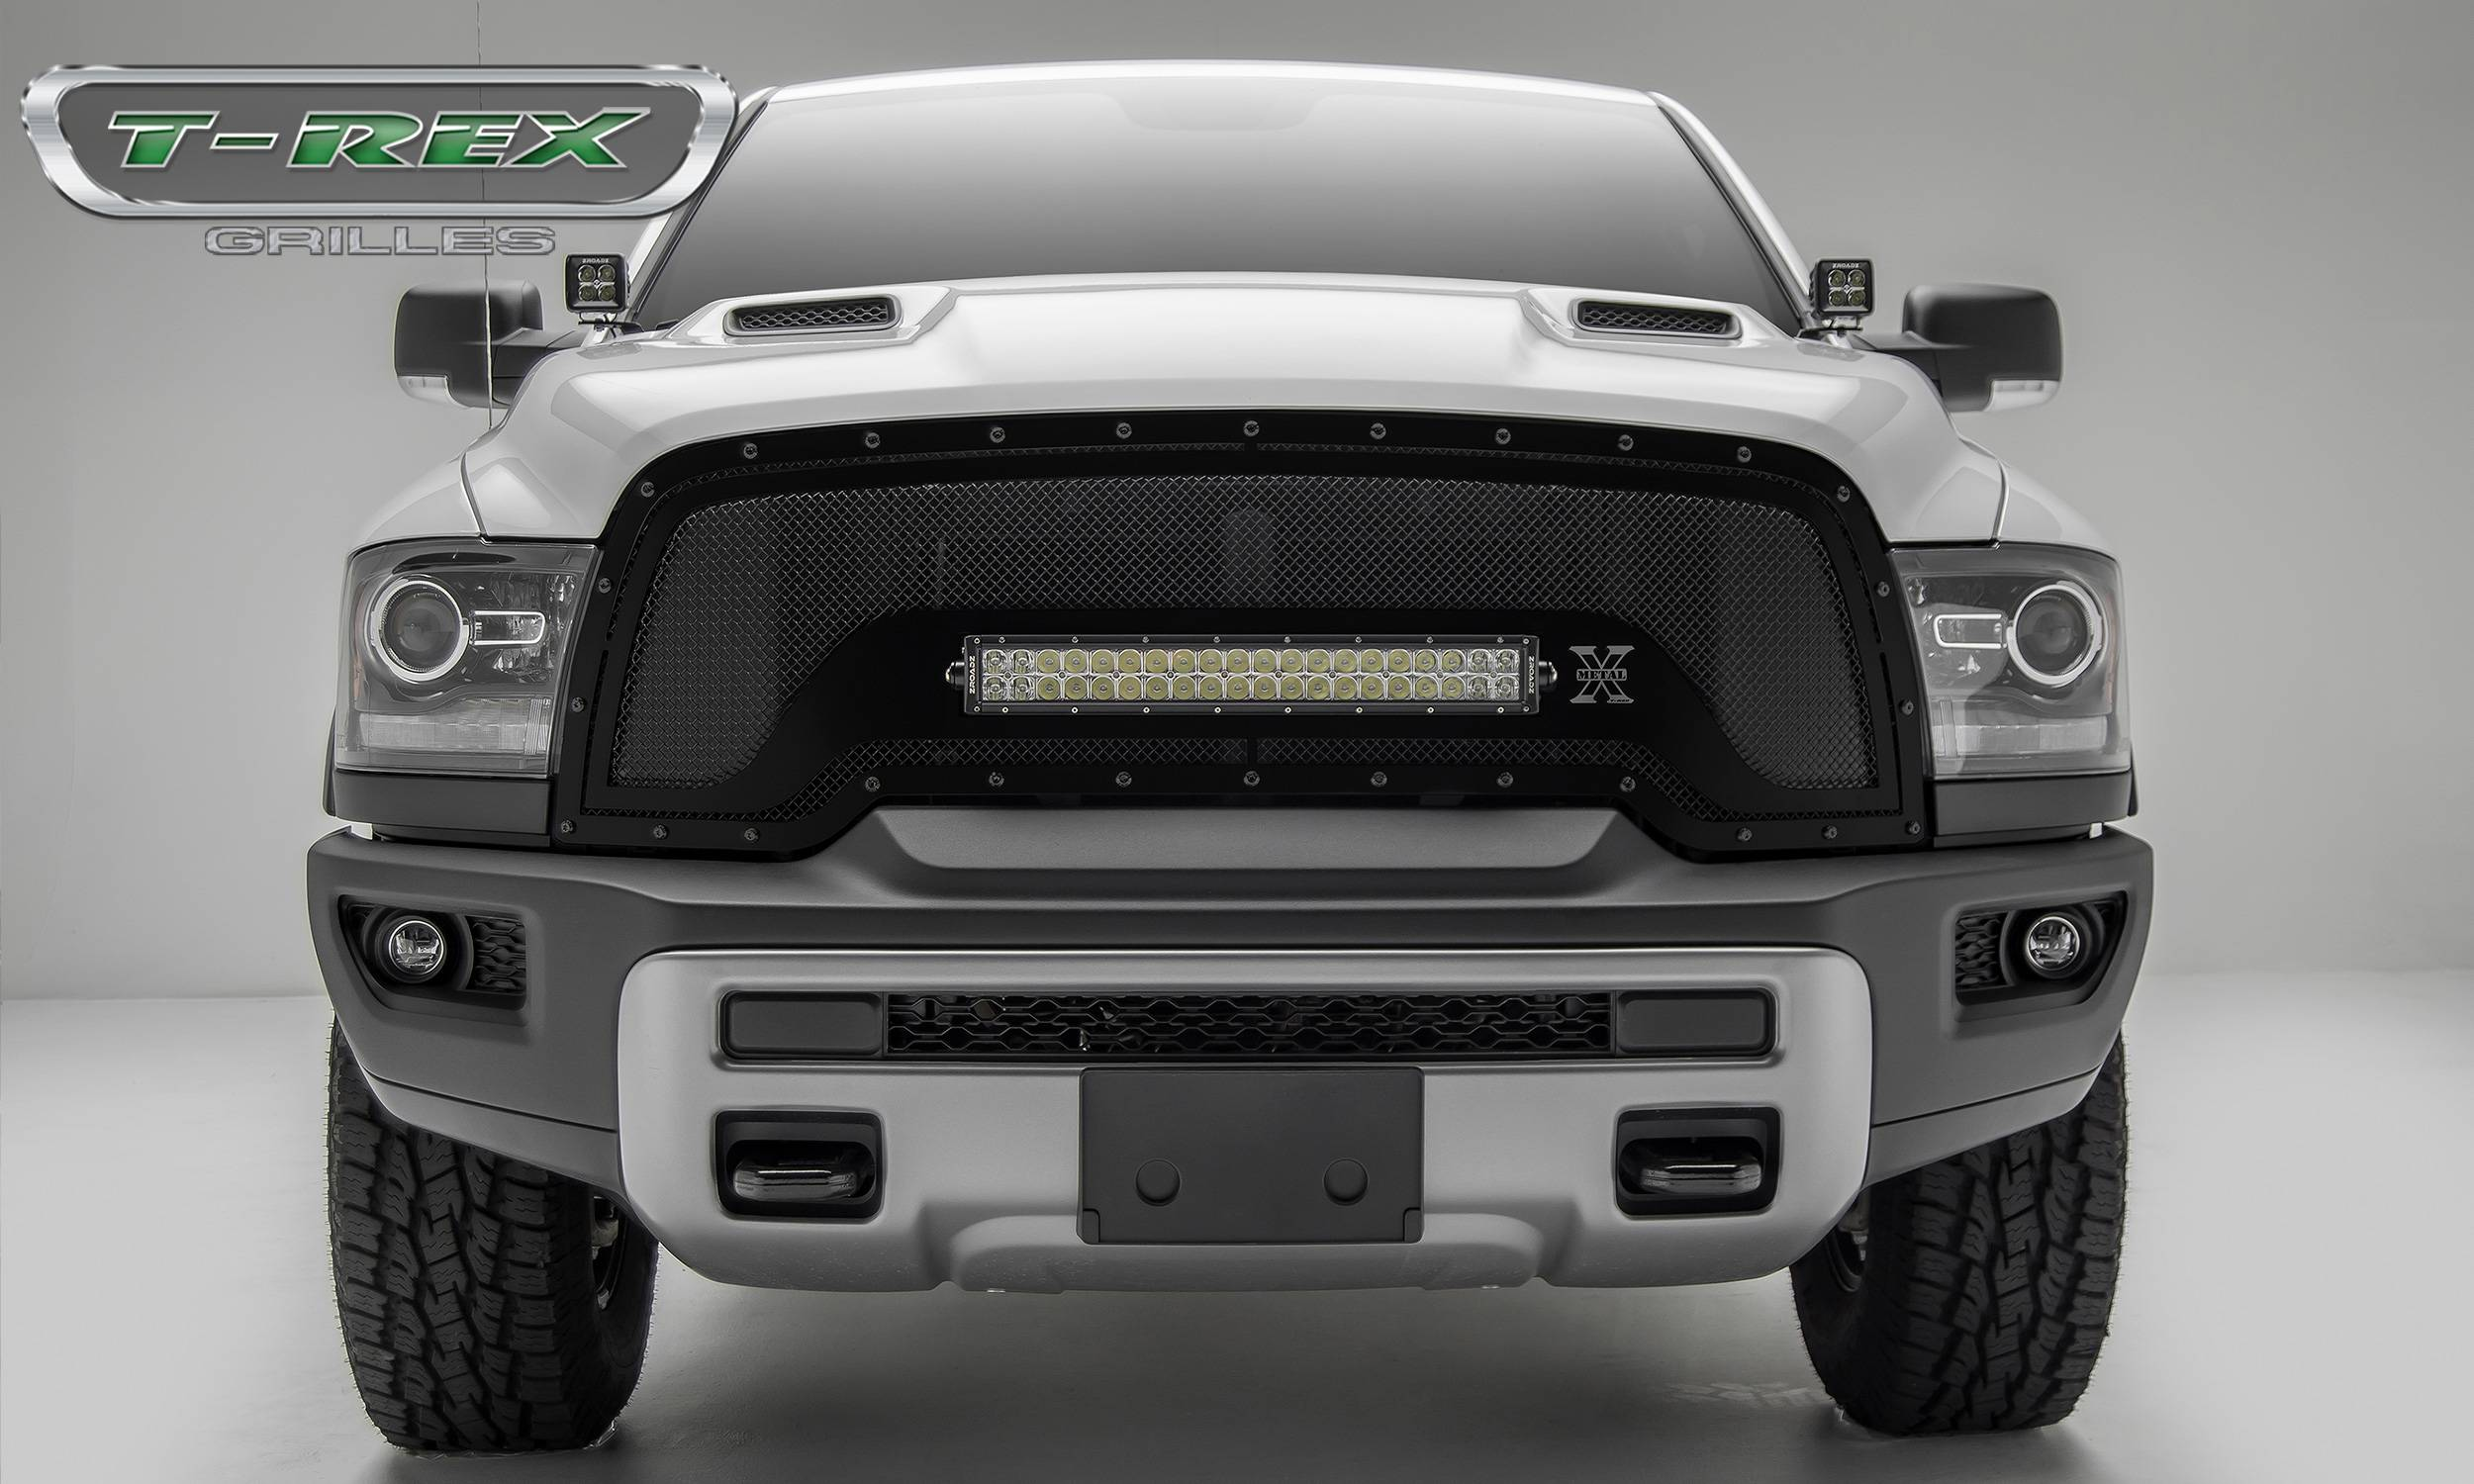 2015 2018 Ram 1500 Rebel Stealth Torch Grille Black 1 Pc Replacement Black Studs Incl 1 20 Led Pn 6314641 Br